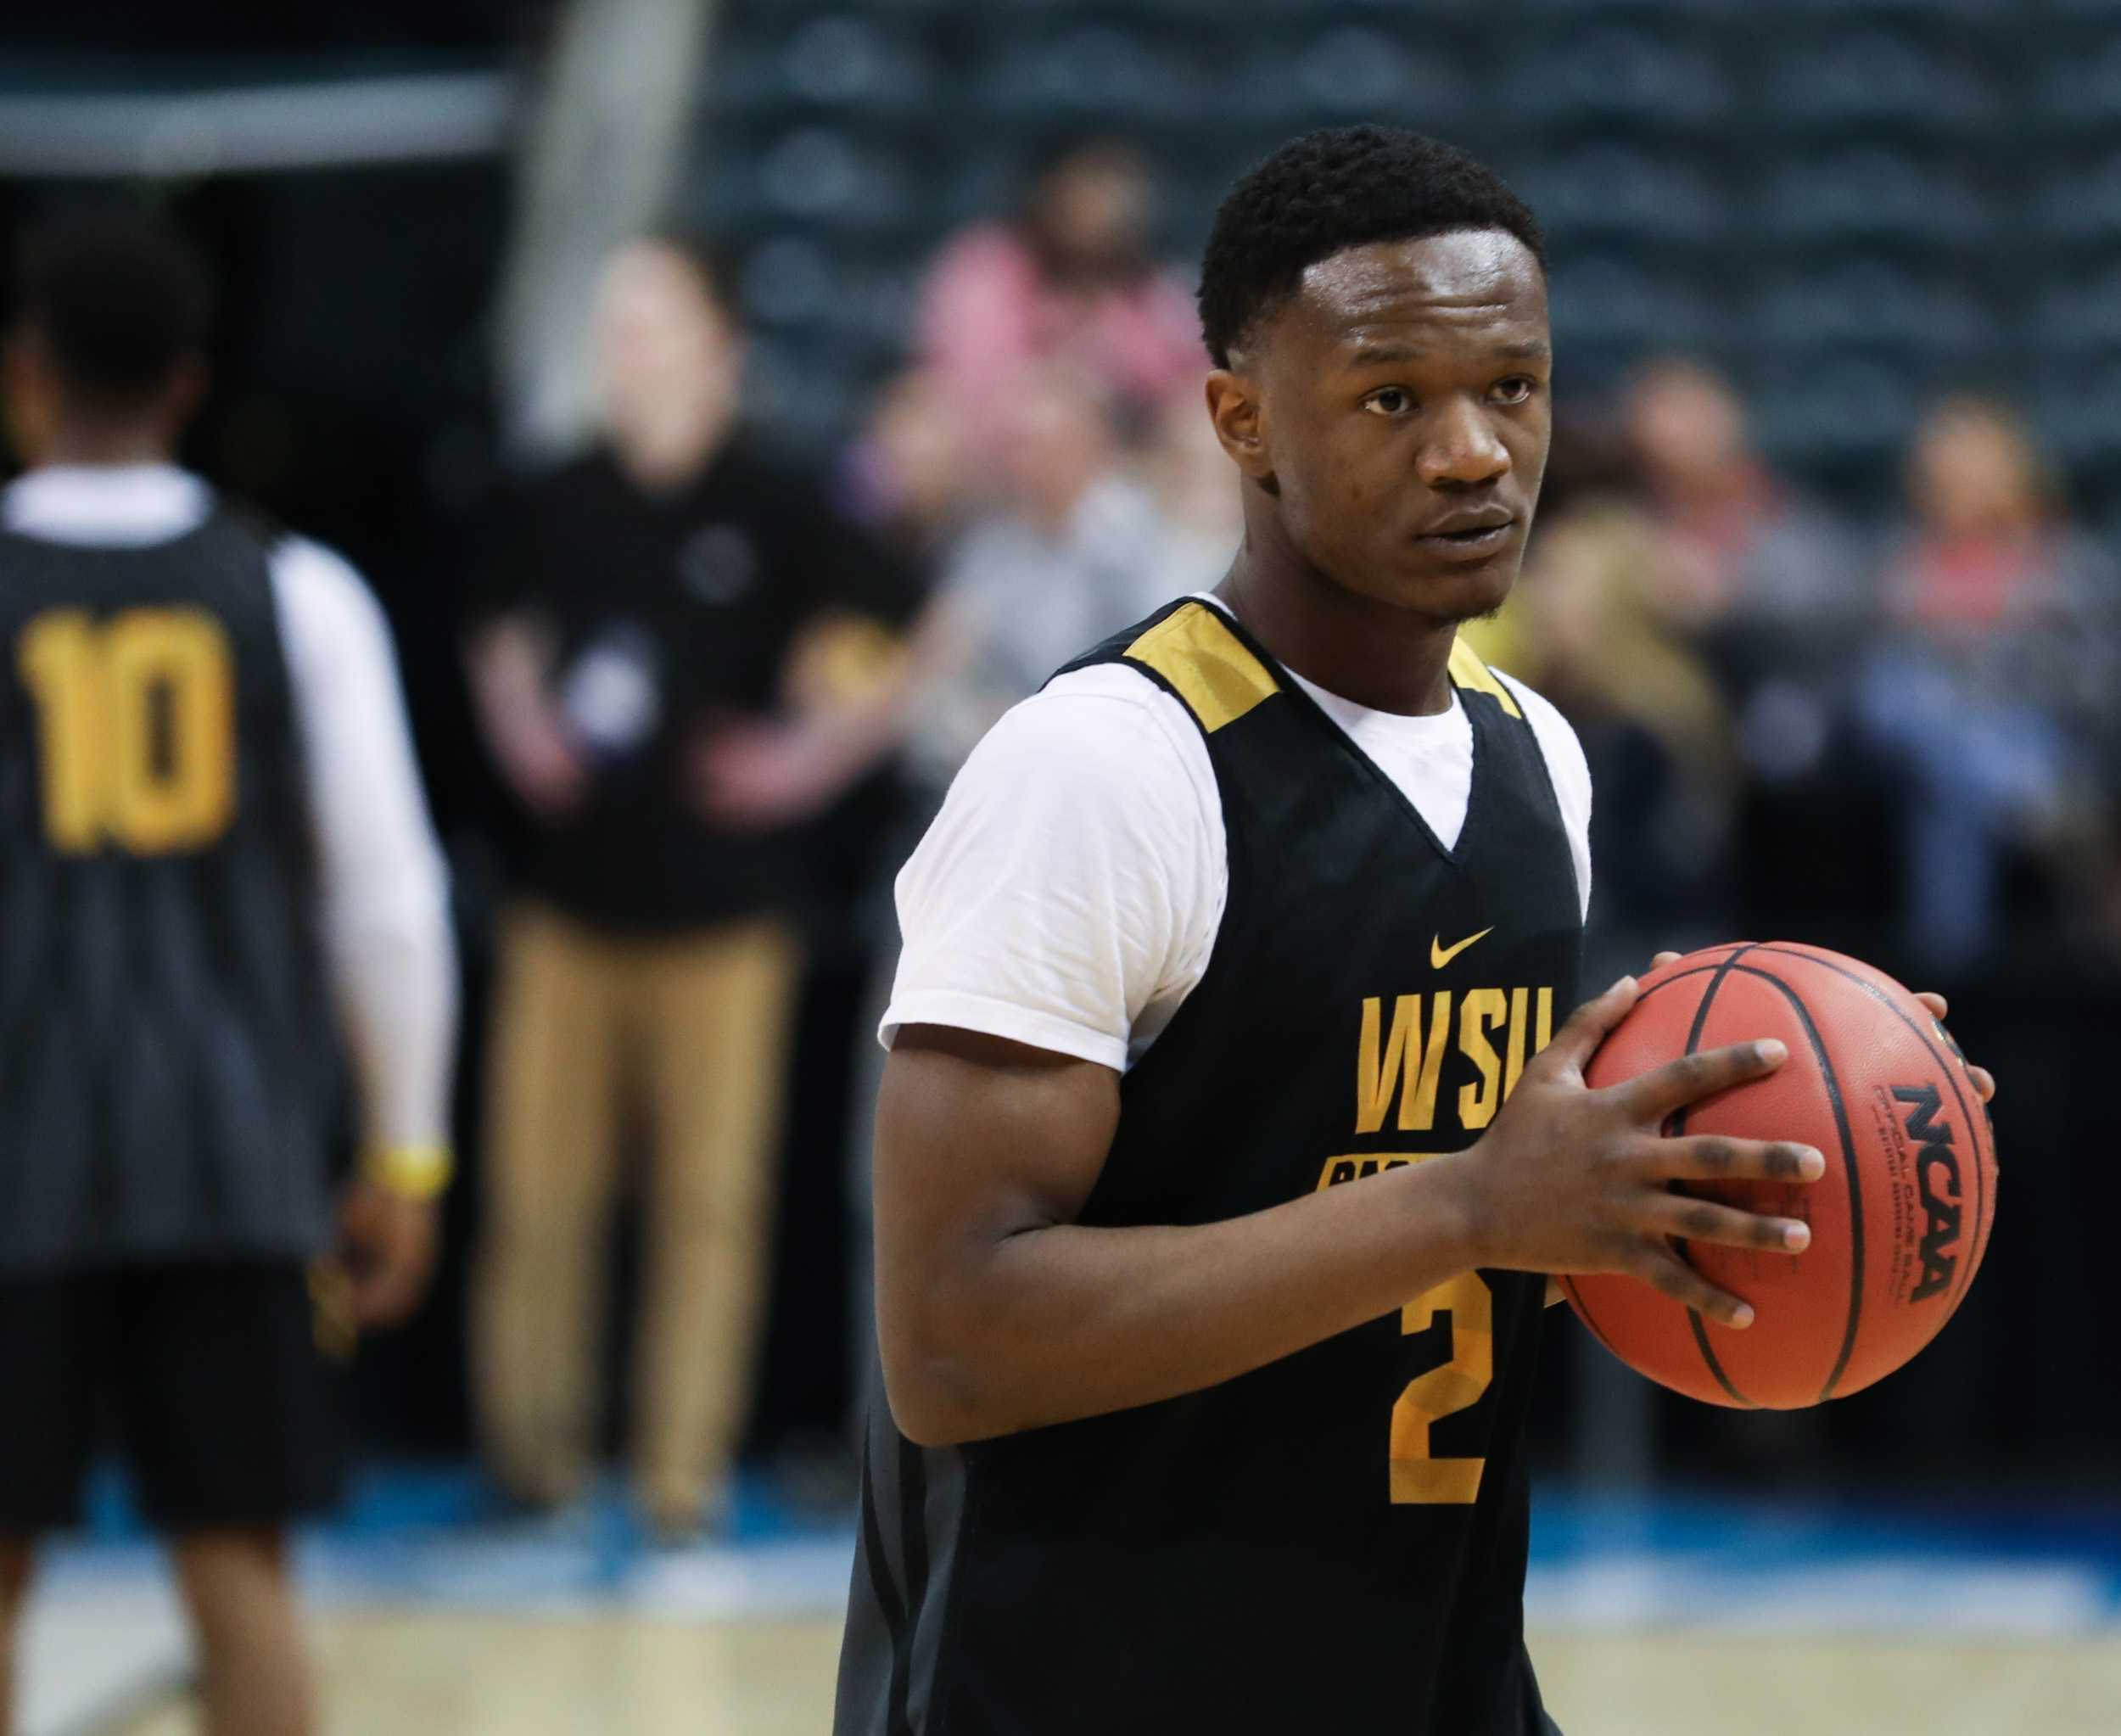 Wichita State's Daishon Smith warms up during the open practice in Bankers Life Fieldhouse in Indianapolis. The Shockers play Dayton in the first round of the NCAA Tournament. (Mar. 16, 2017)